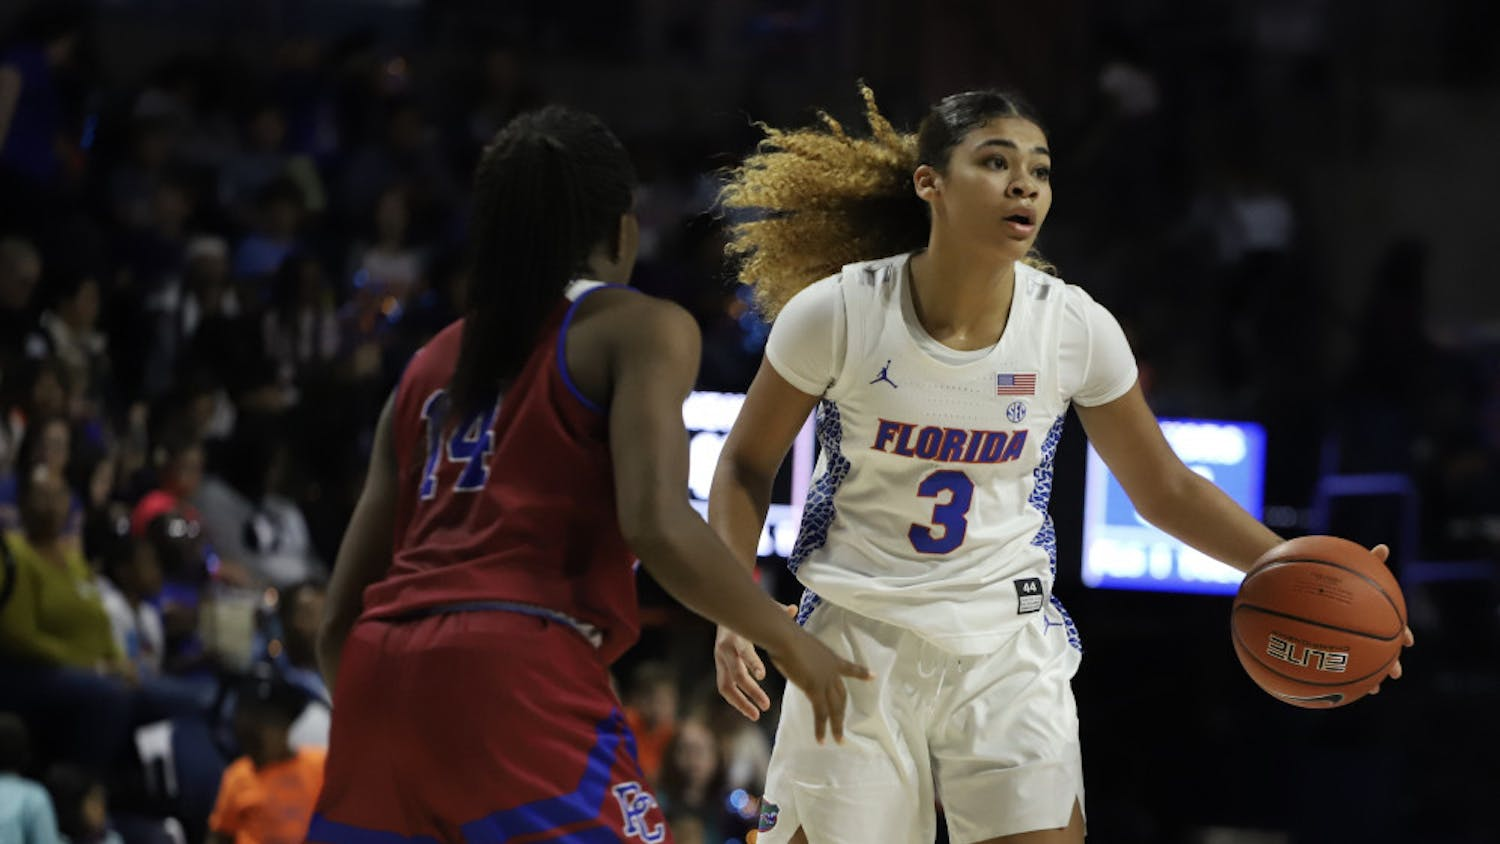 Sophomore guard Lavender Briggs at the Gators' game versus Presbyterian last season. This year Floridawill play an abridged 24-game schedule with 16 conference tilts.